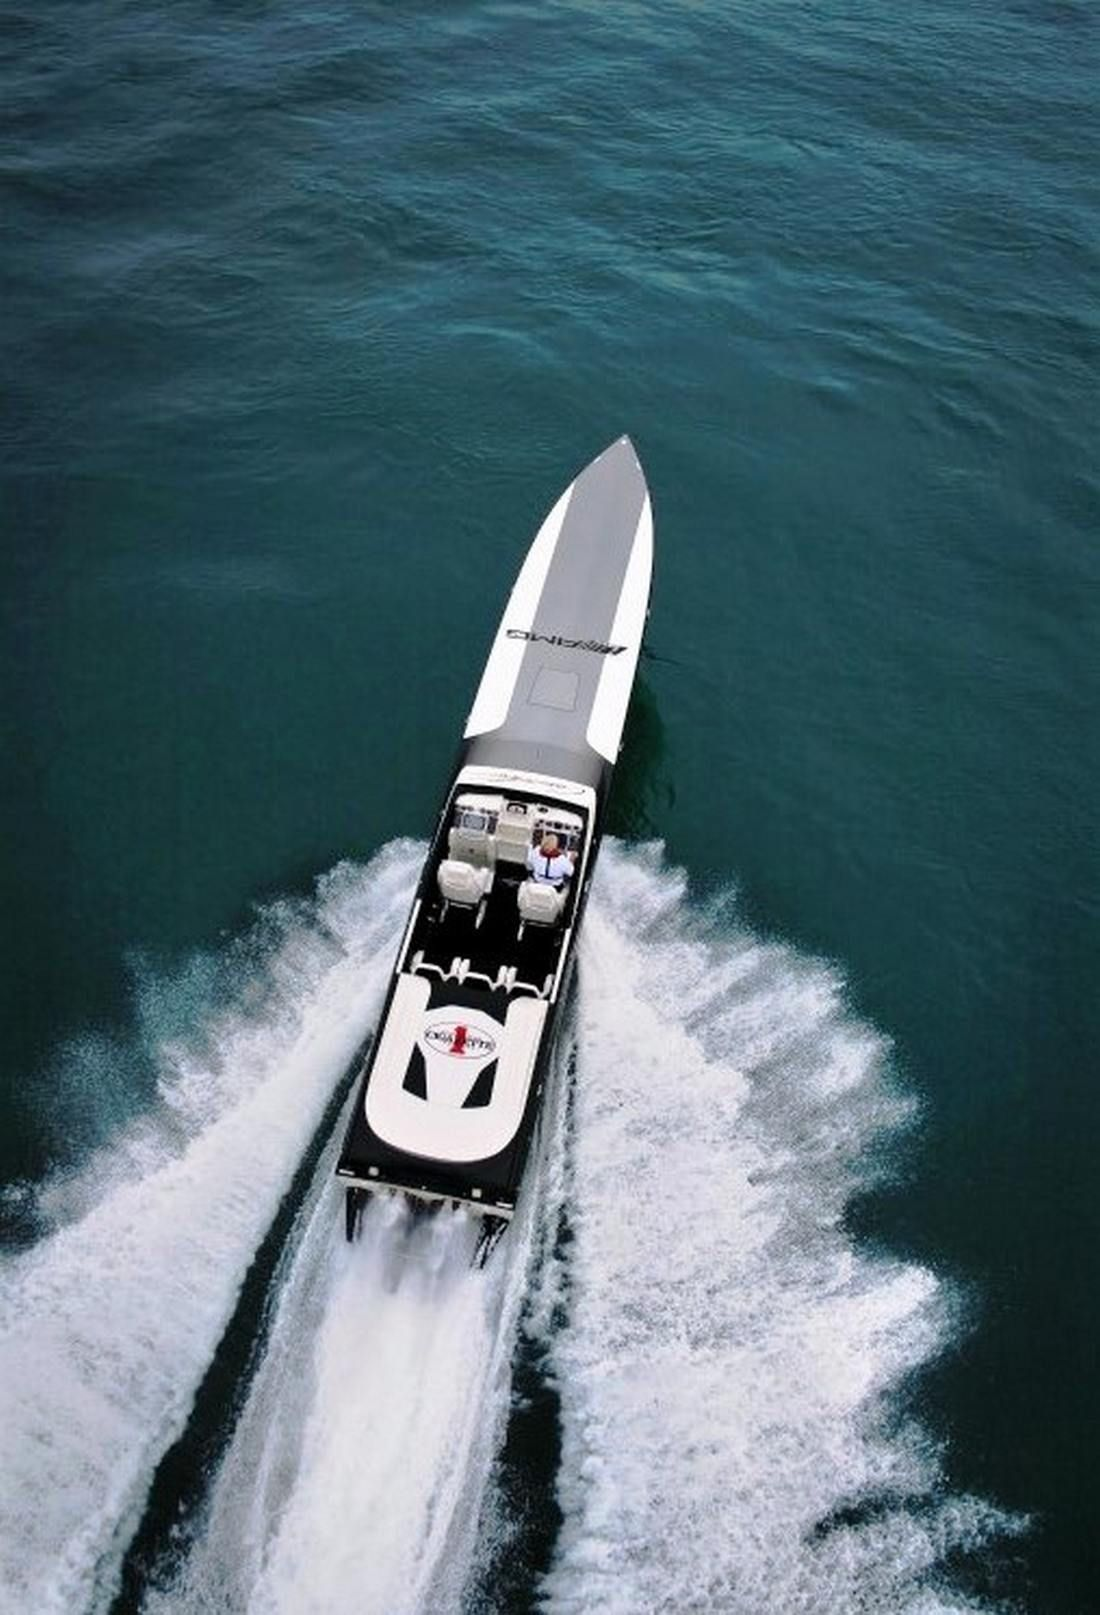 Cigarette Amg Produce The World S Fastest Electric Boat 6